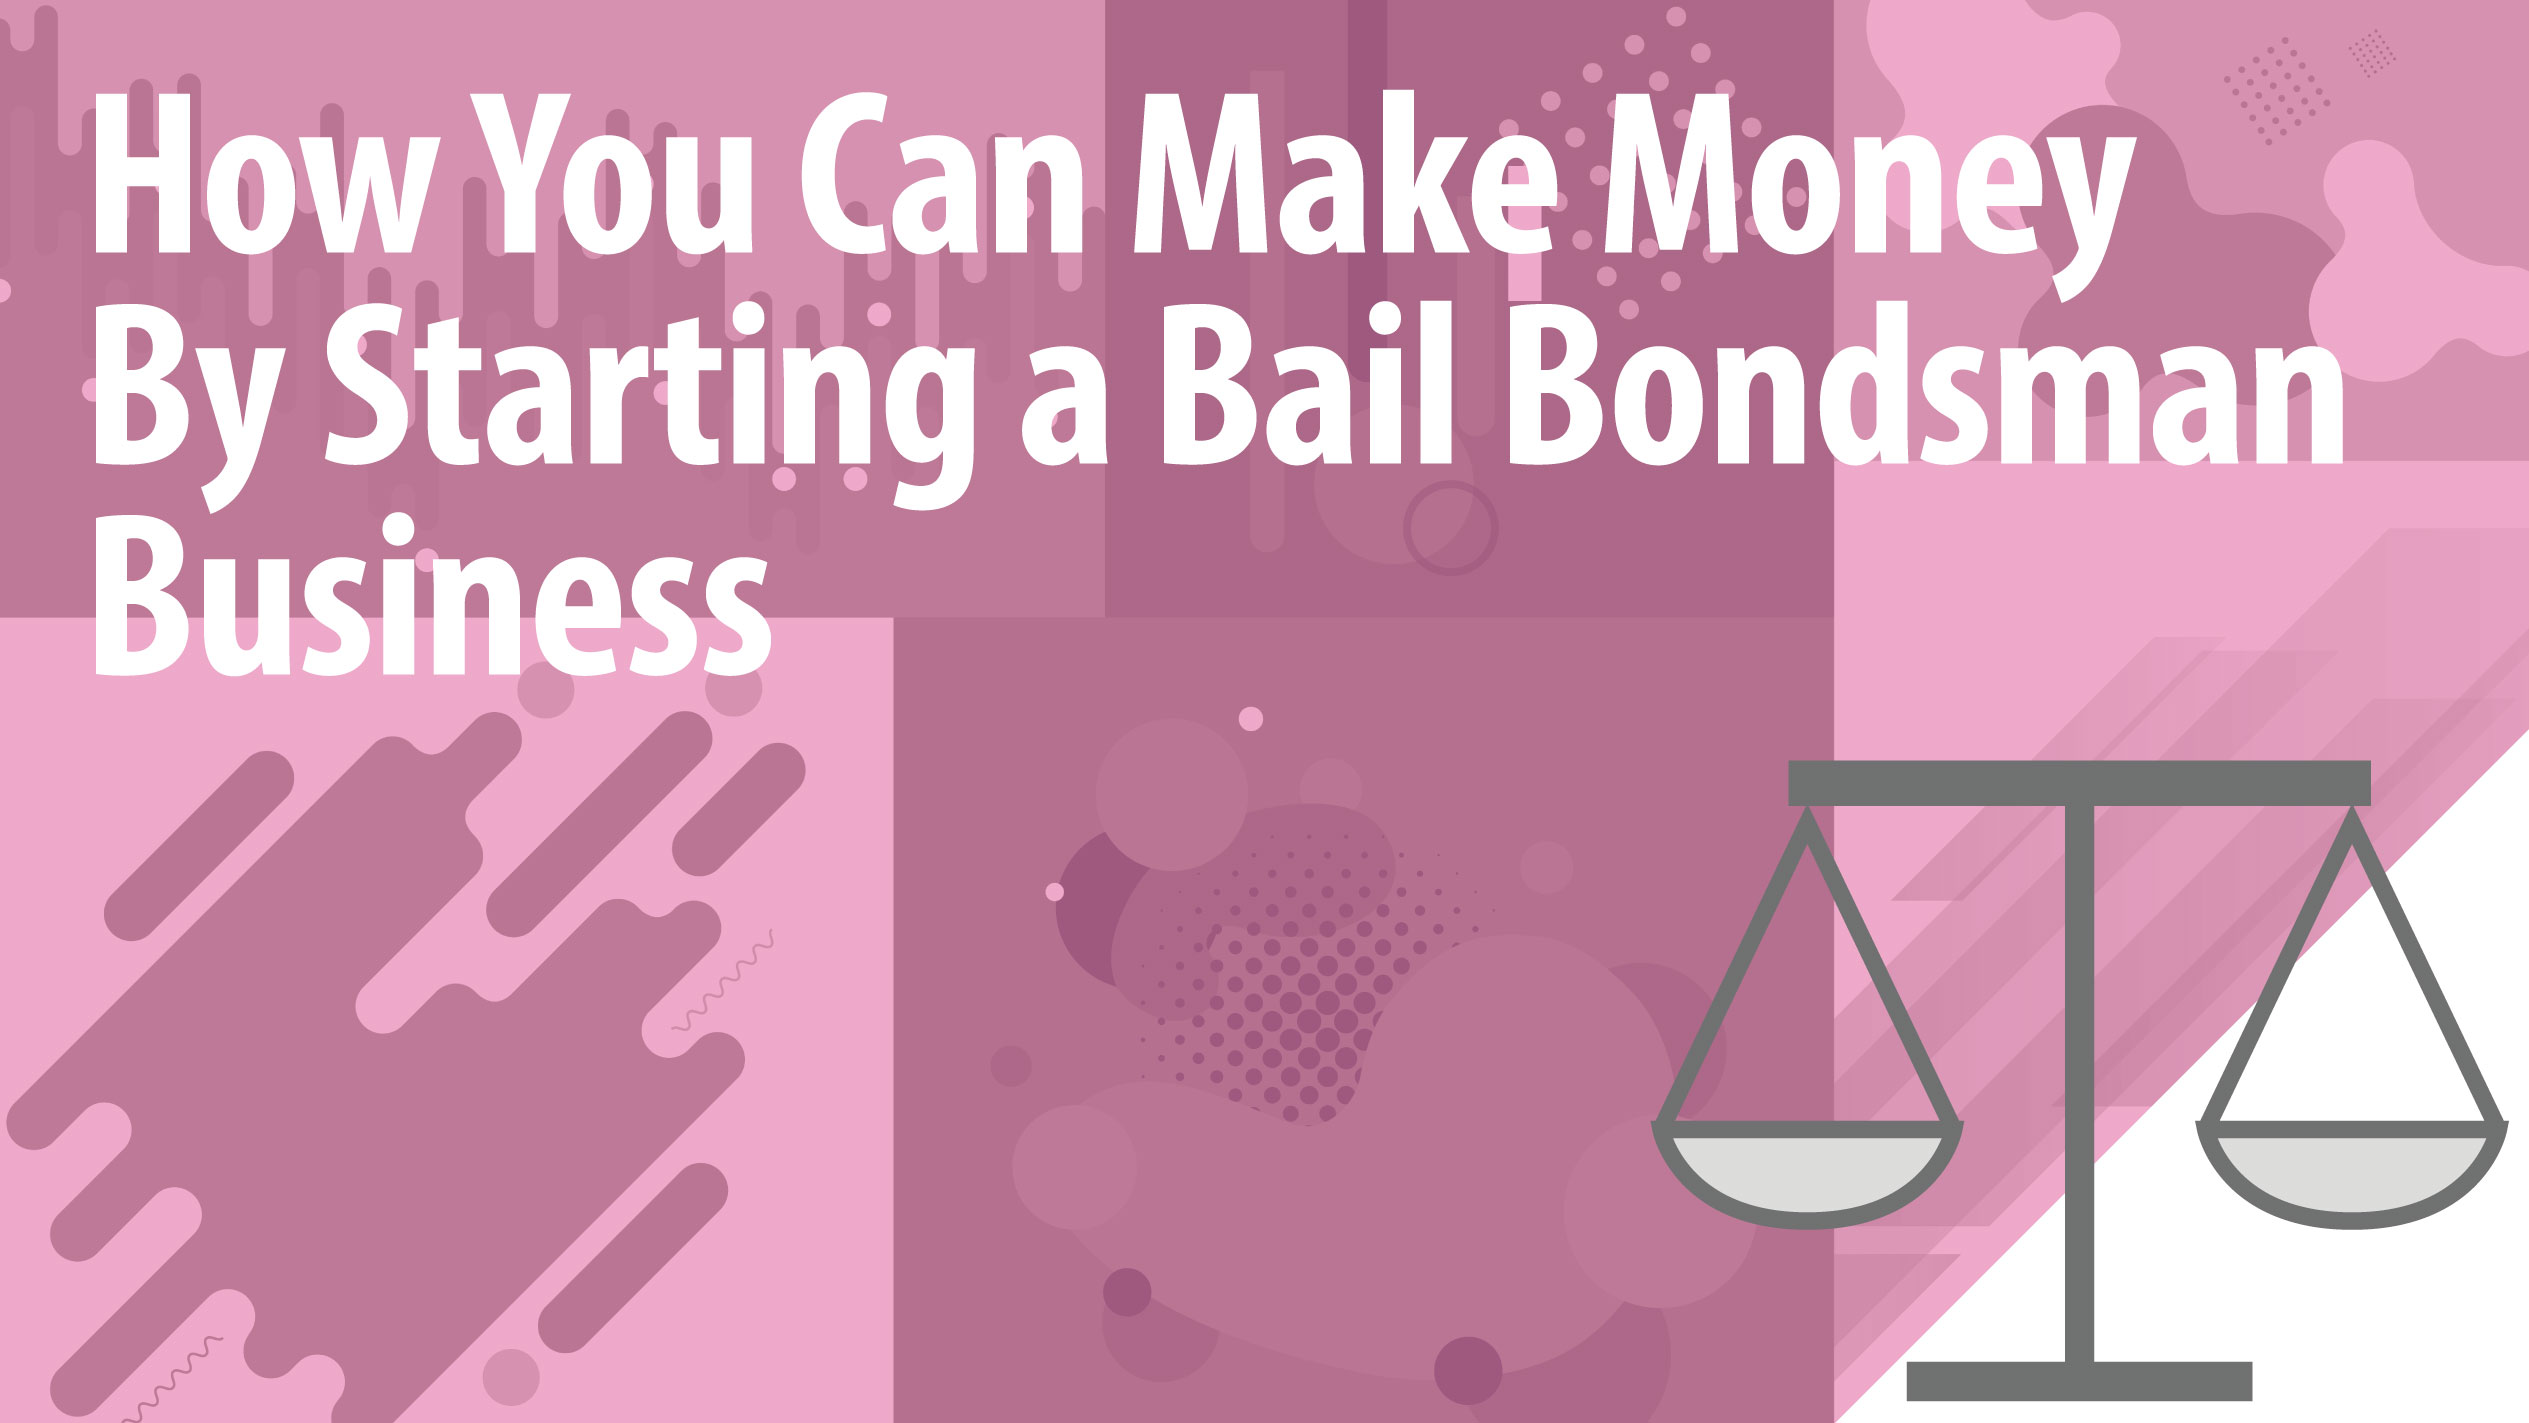 How You Can Make Money By Starting a Bail Bondsman Business